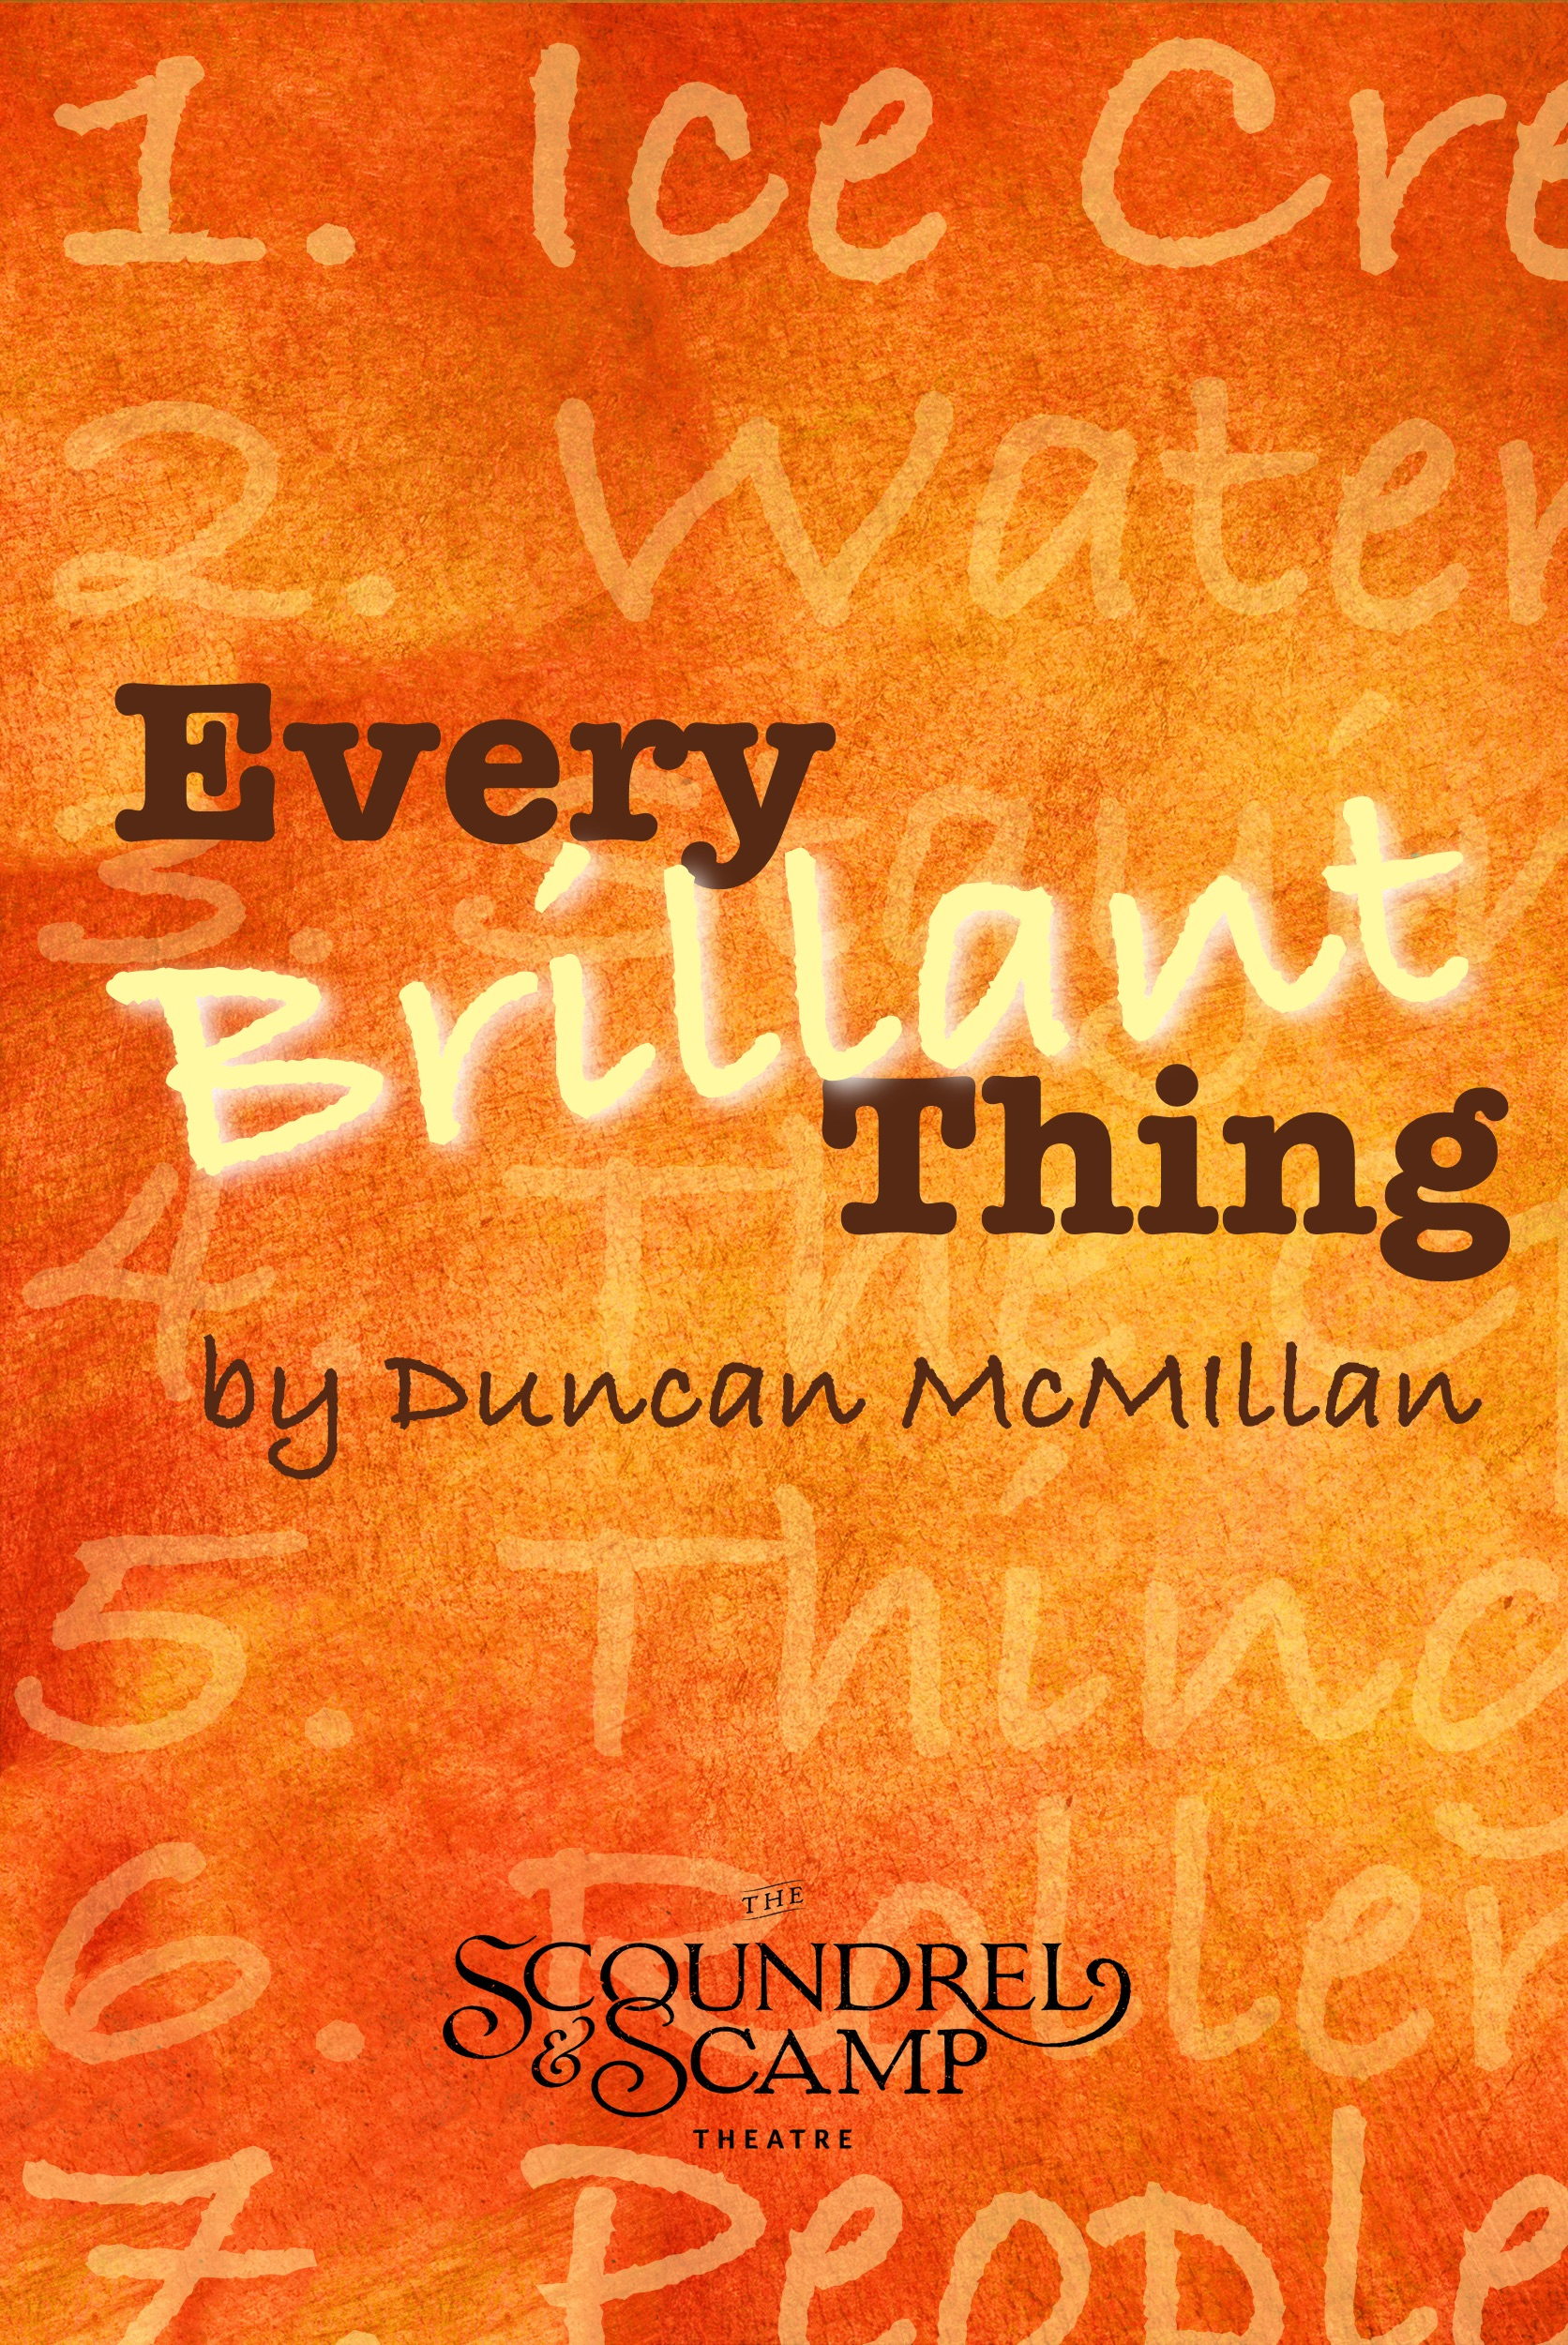 Every Brilliant Thing.jpg